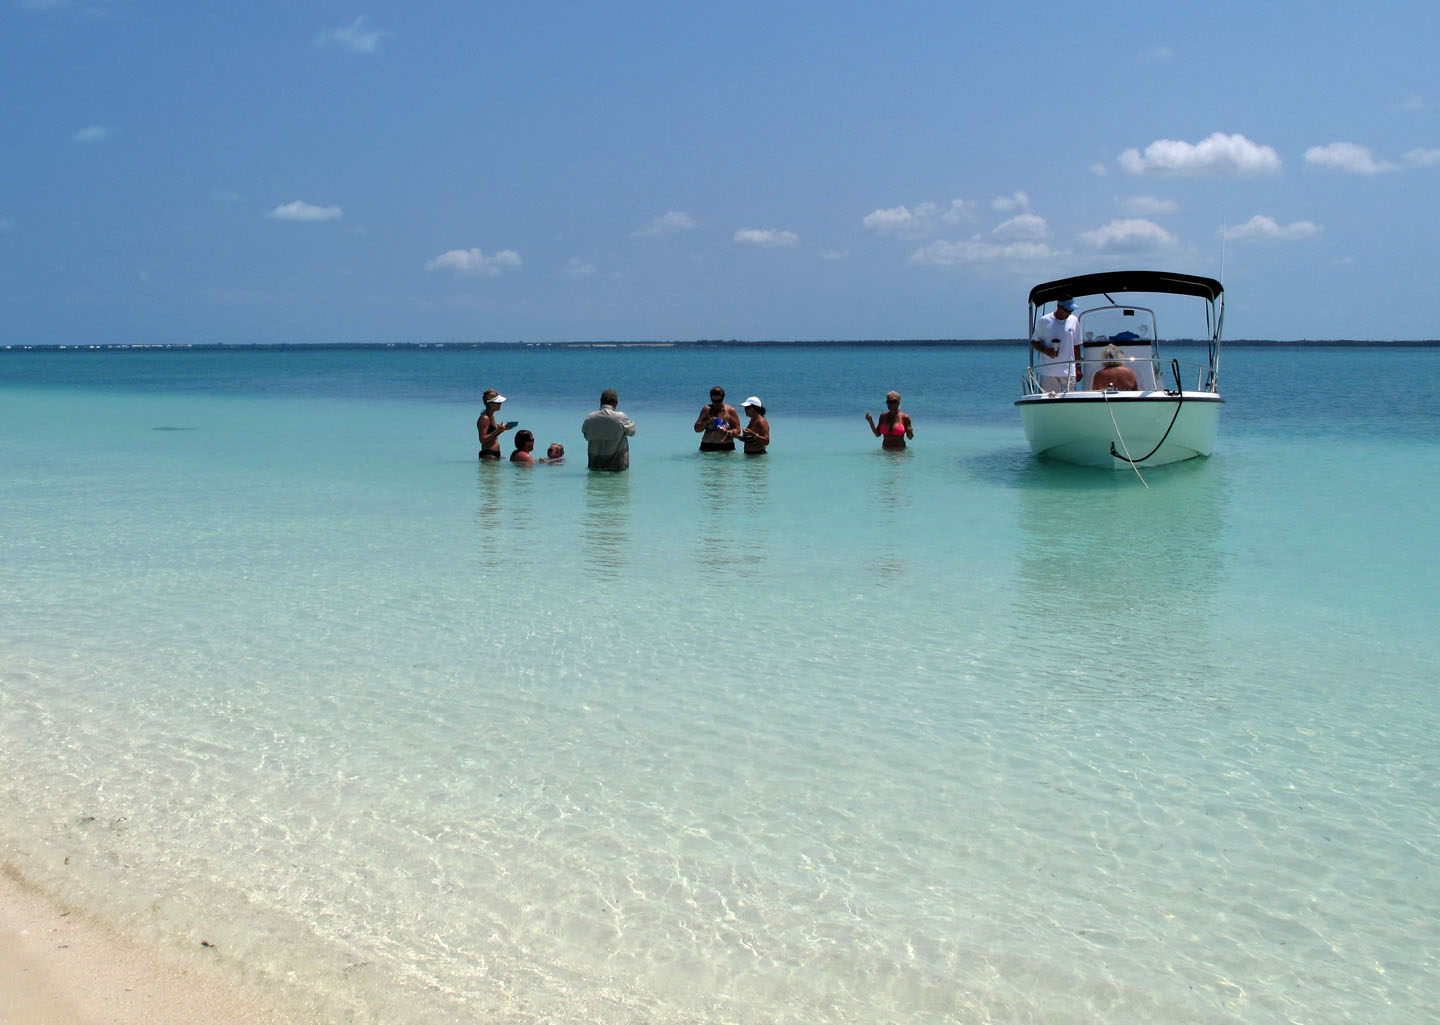 bahamas, abaco, green turtle cay, gillam bay, boating, conch